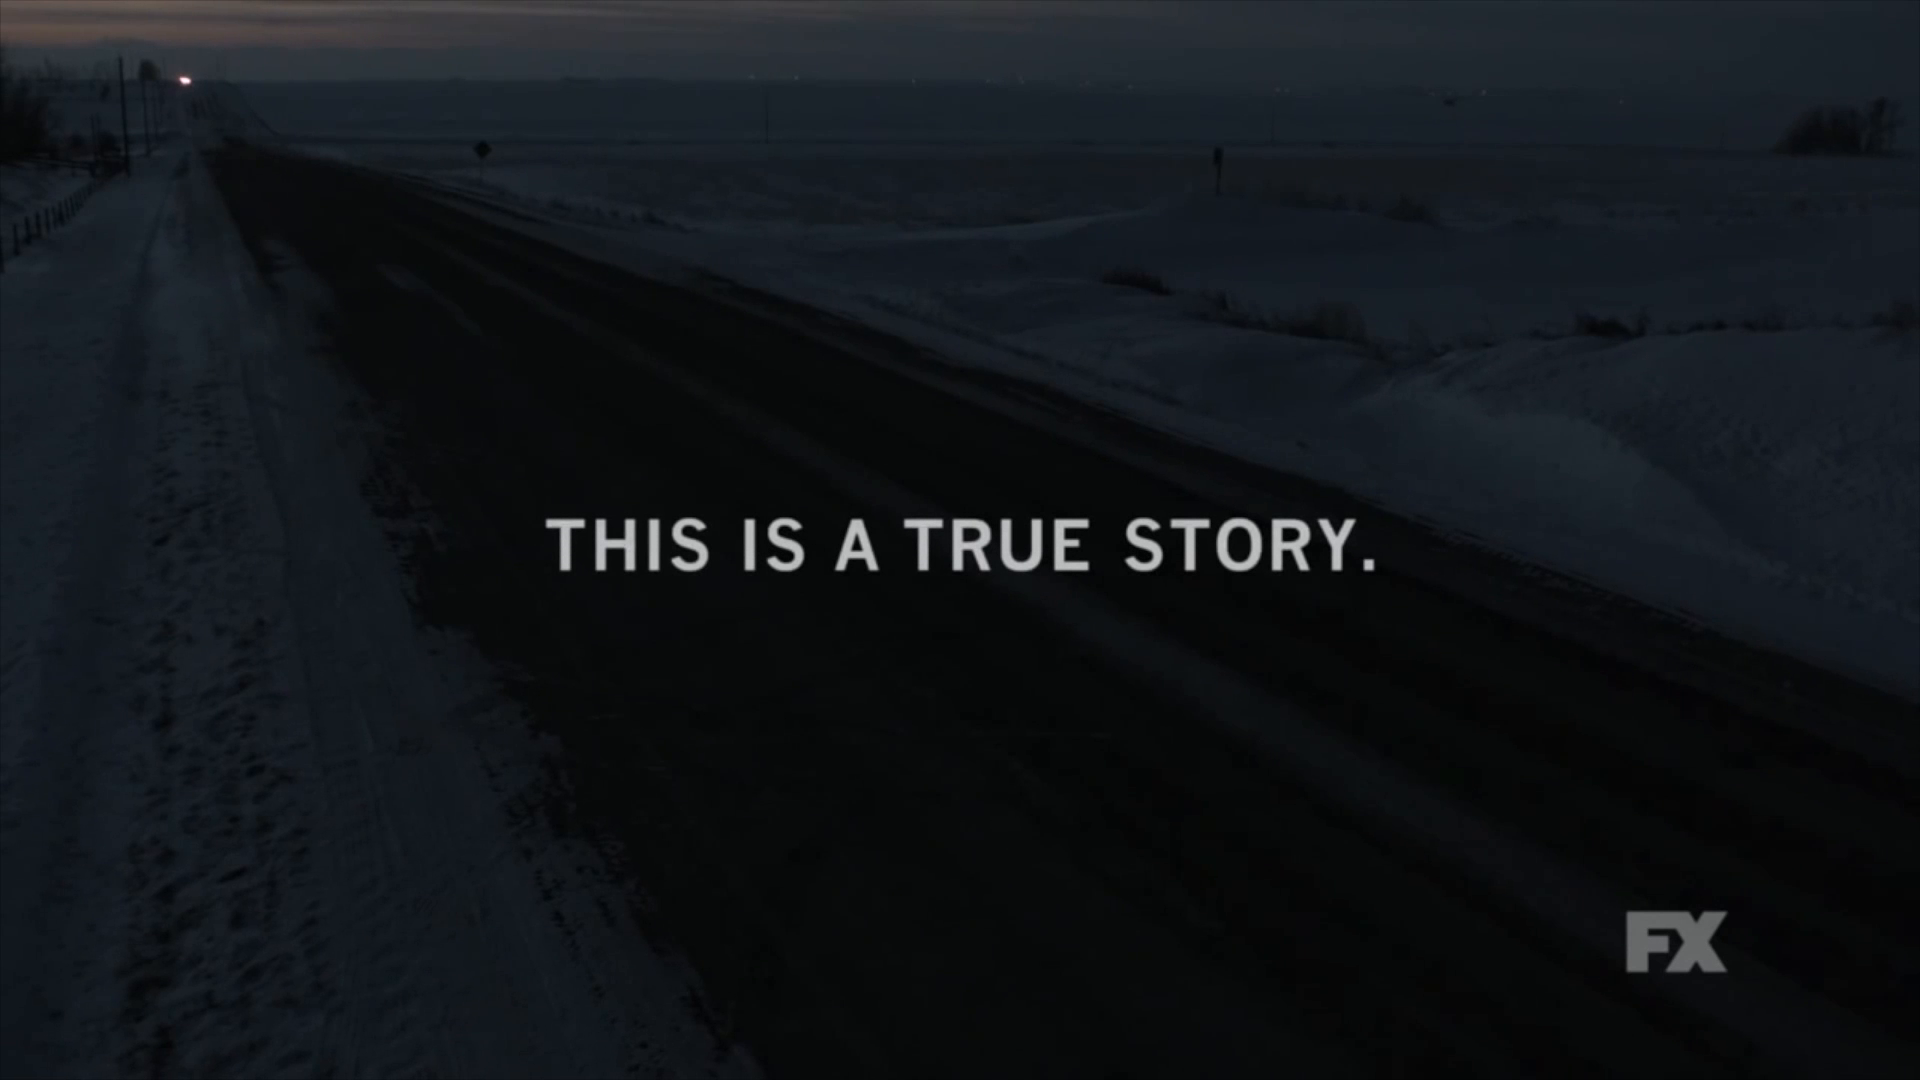 """This is a true story. The events depicted took place in Minnesota in 2006. At the request of the survivors, the names have been changed. Out of respect for the dead, the rest has been told exactly as it occurred"" Apertura de cada episodio de Fargo 